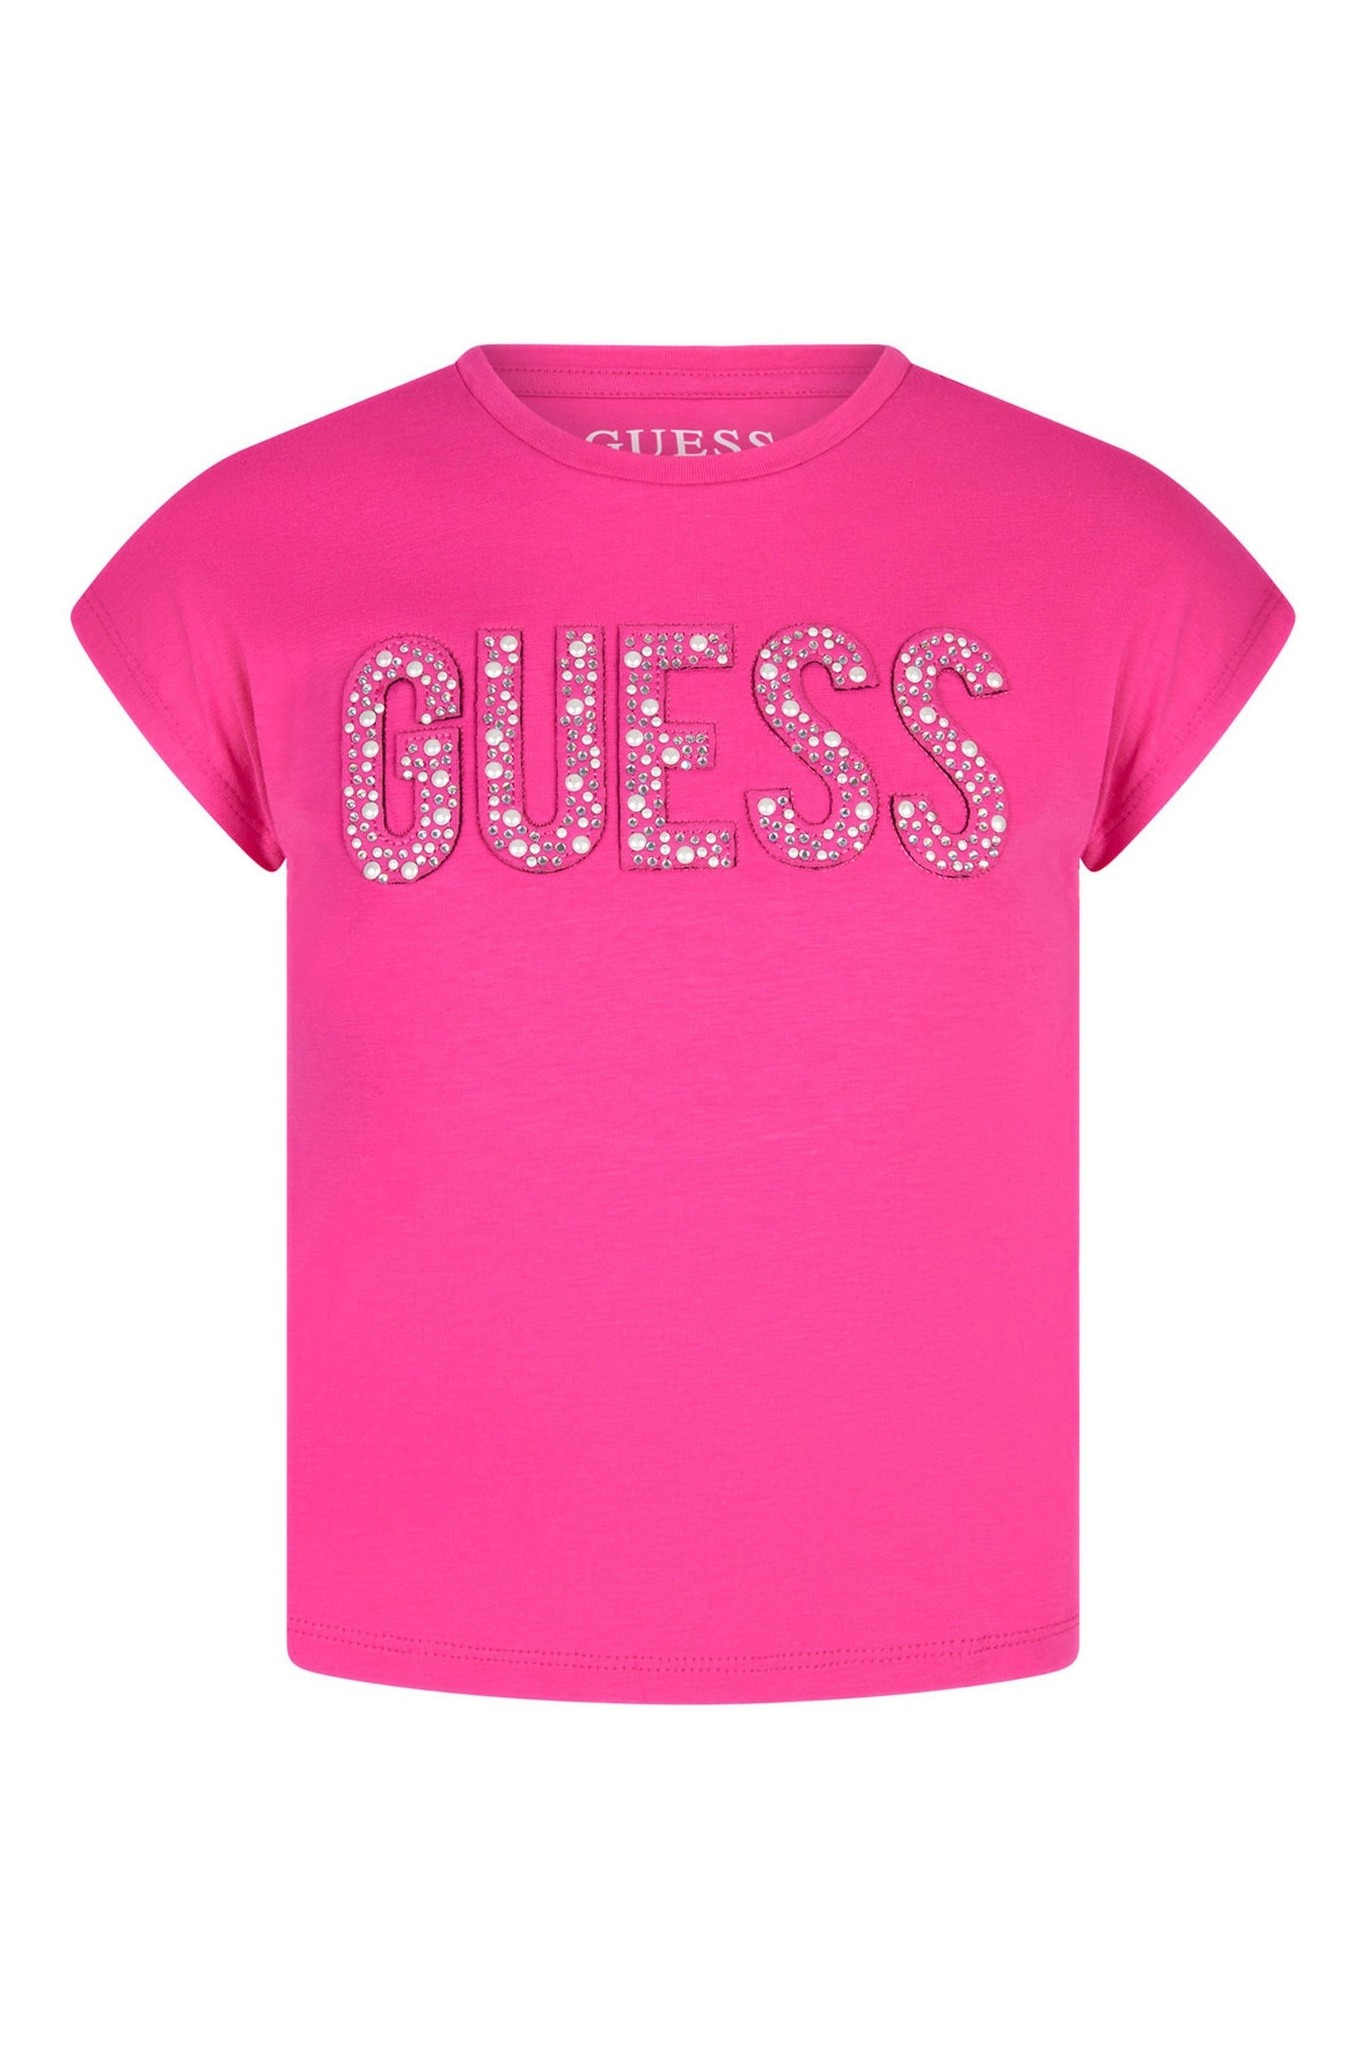 GUESS HOT PINK FRONT LOGO STUDS T-SHIRT S21